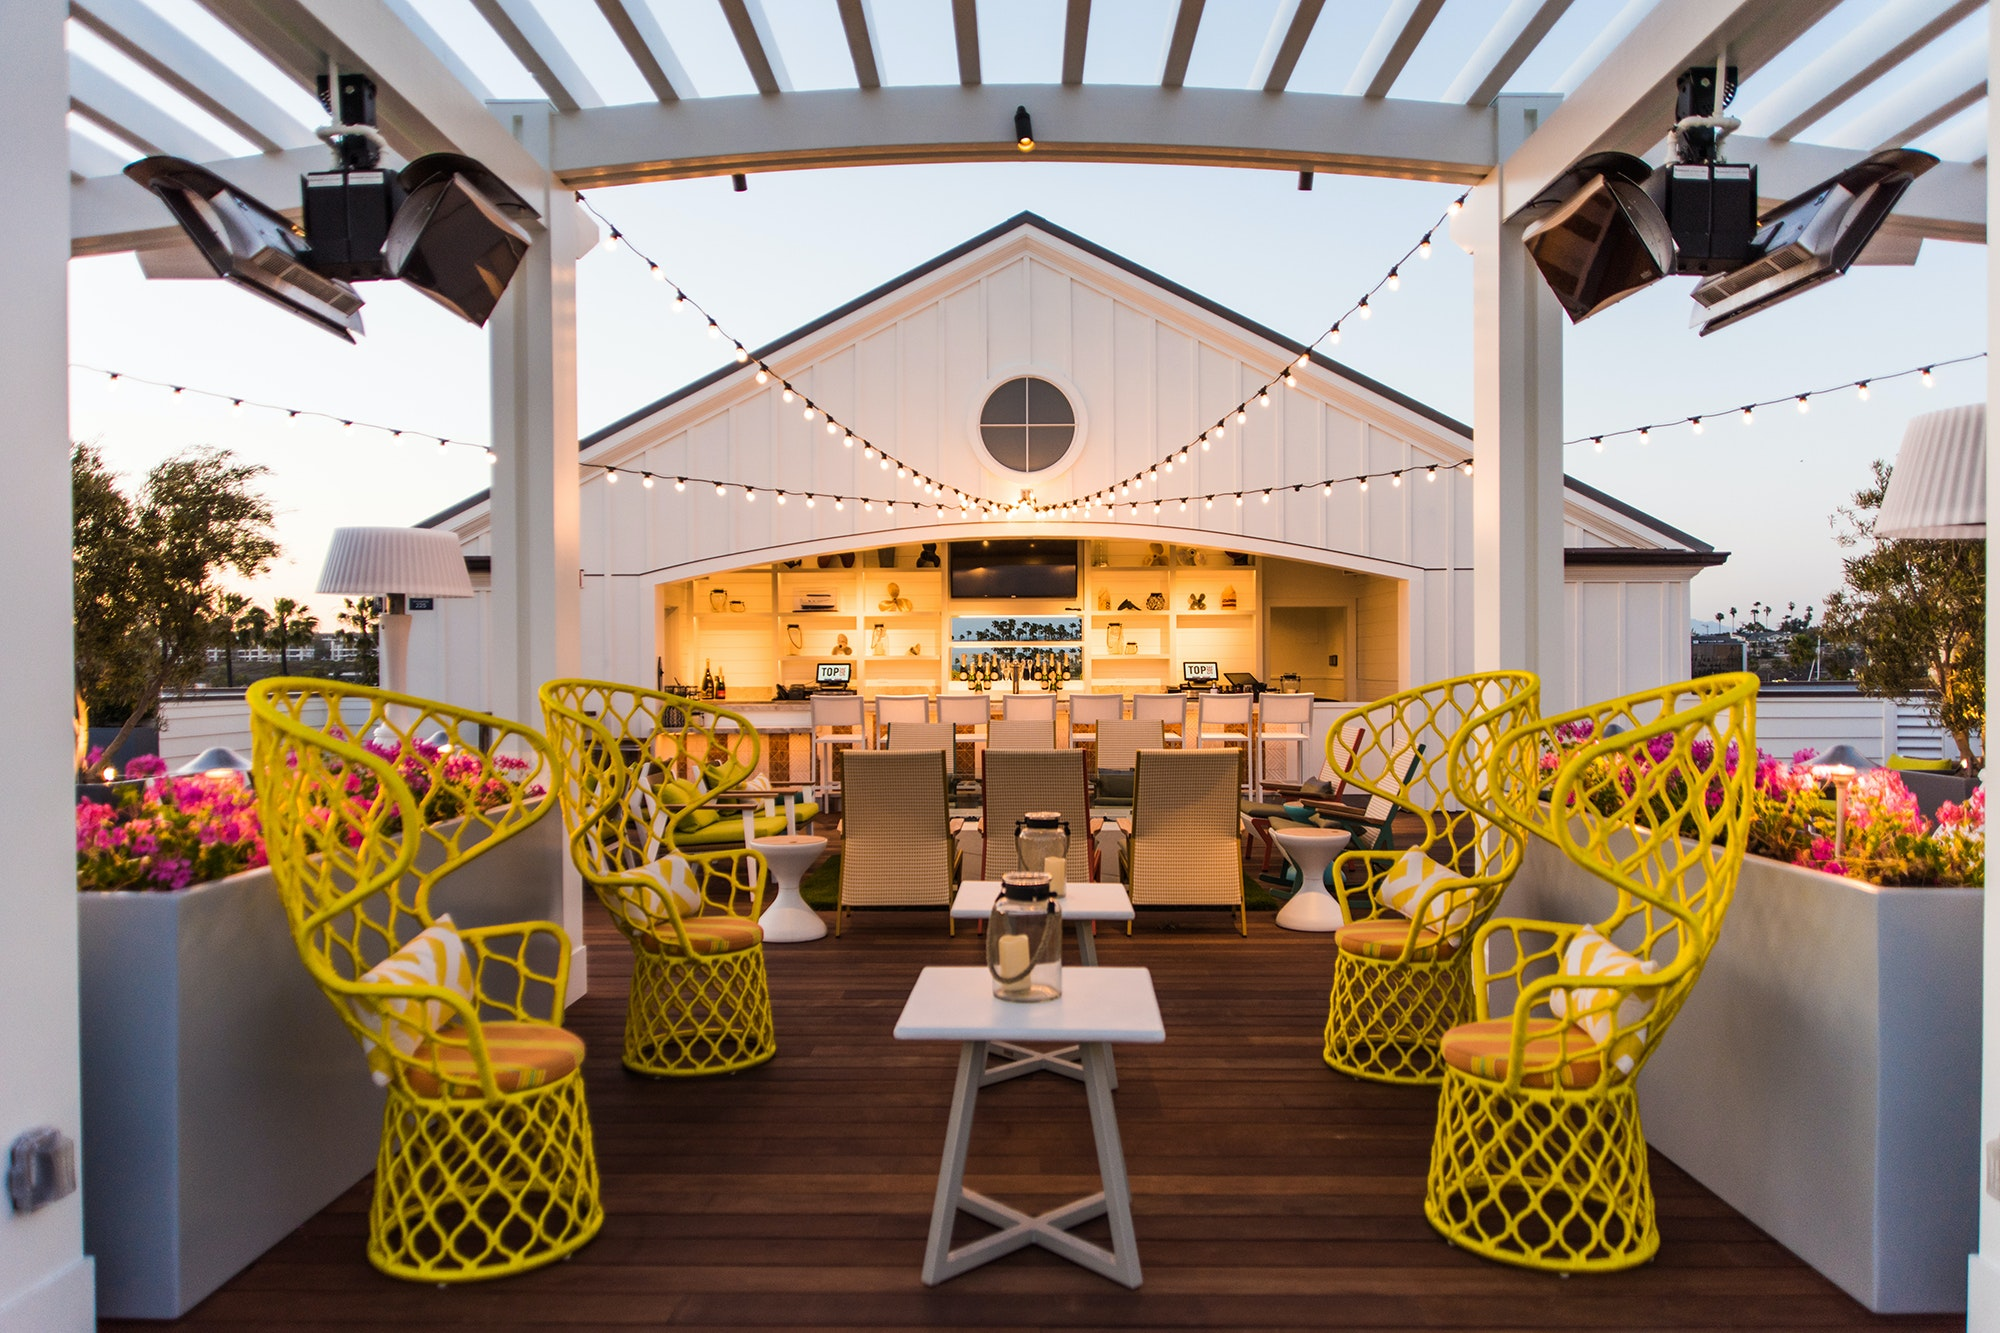 The Topside Roof Deck bar at Newport Beach's Lido House hotel